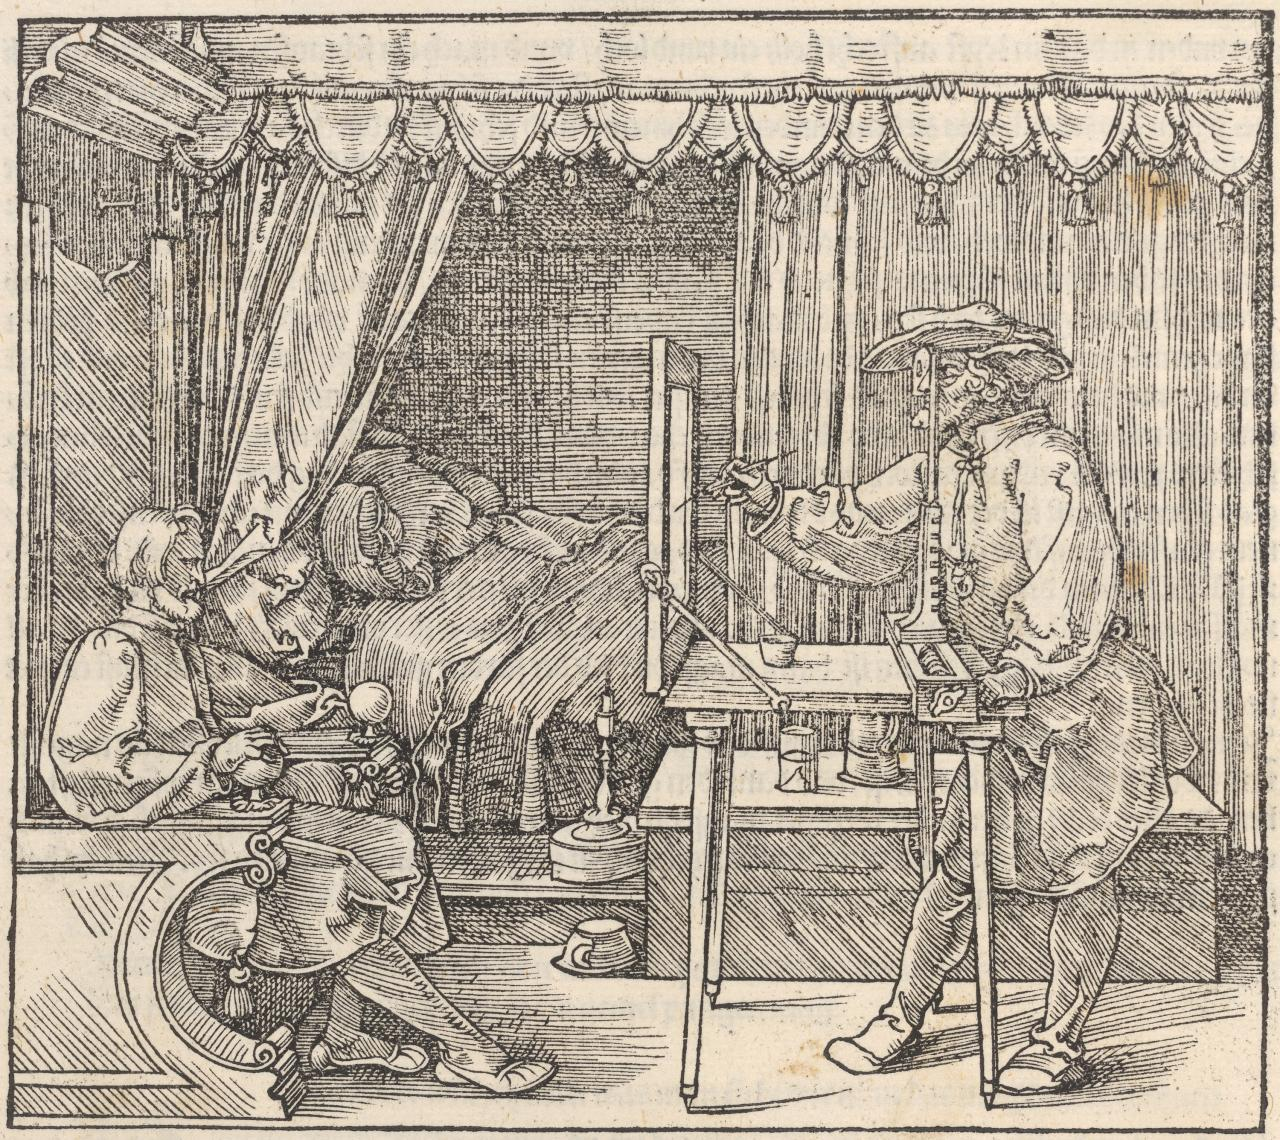 Draughtsman drawing a seated man